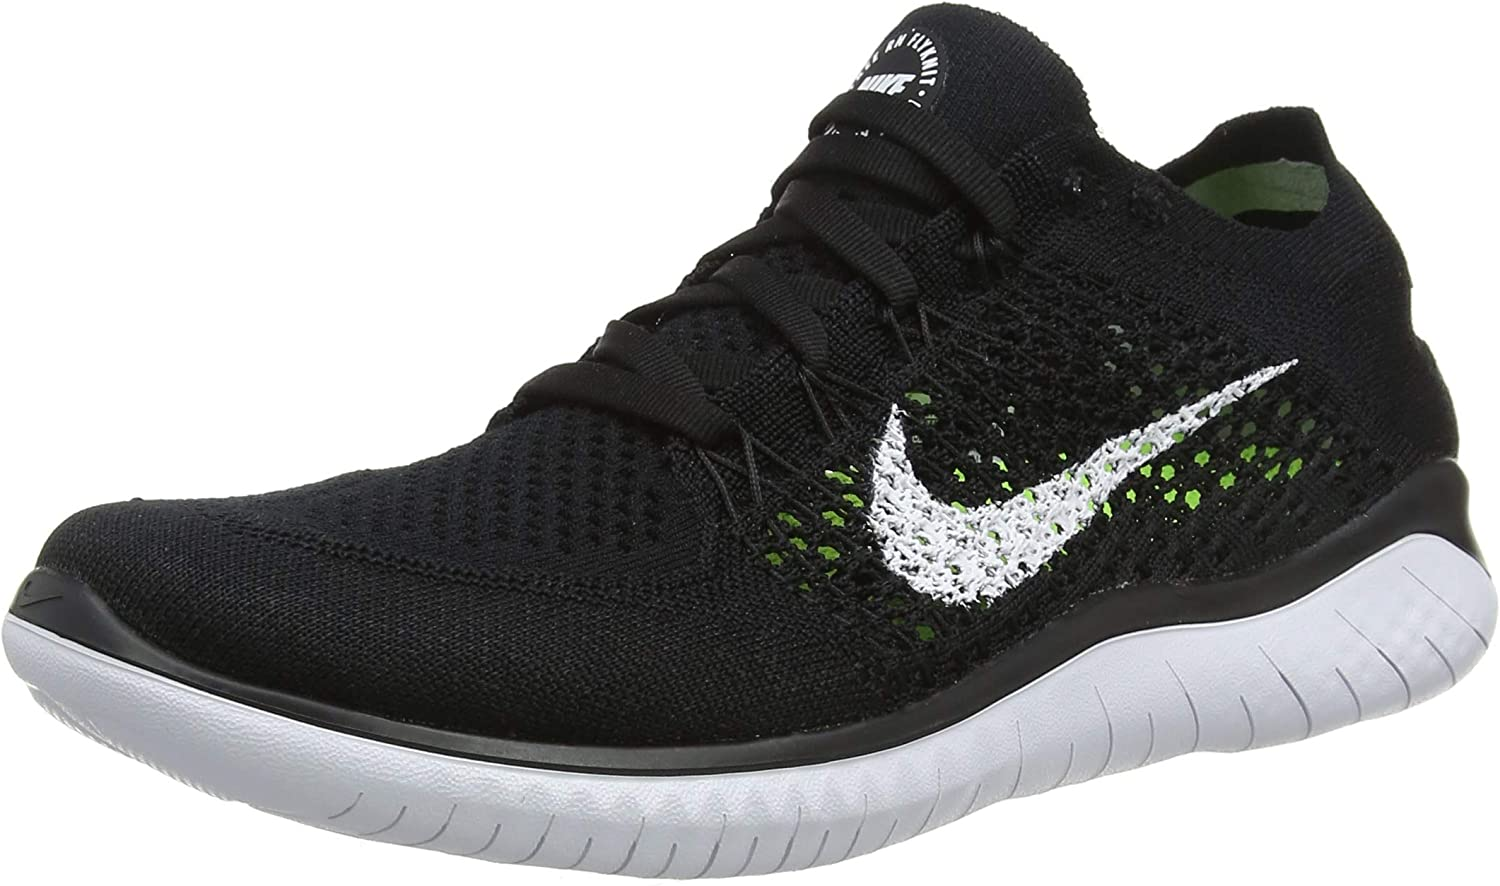 Nike Womens Free Rn Flyknit 2018 Low Top Lace Up Running, Black White, Size 8.0